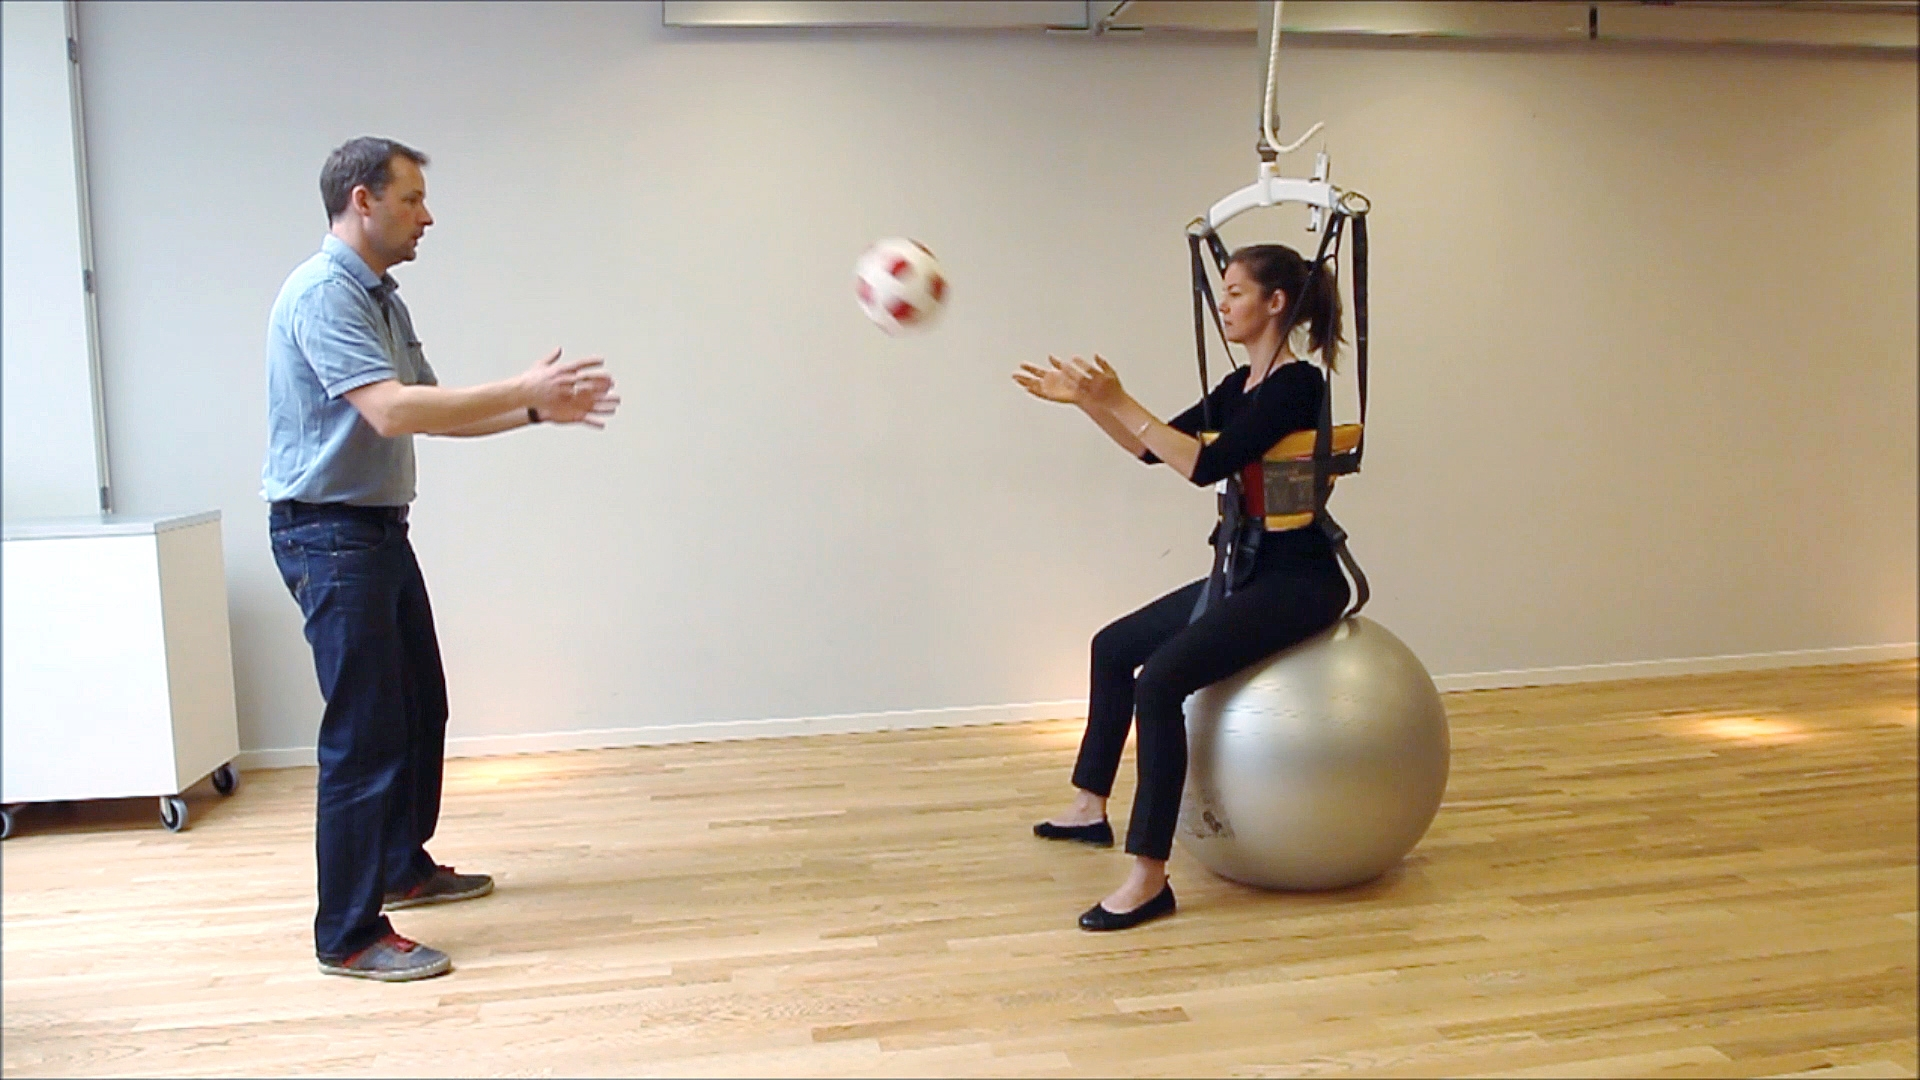 Balance Exercises - sitting on a ball